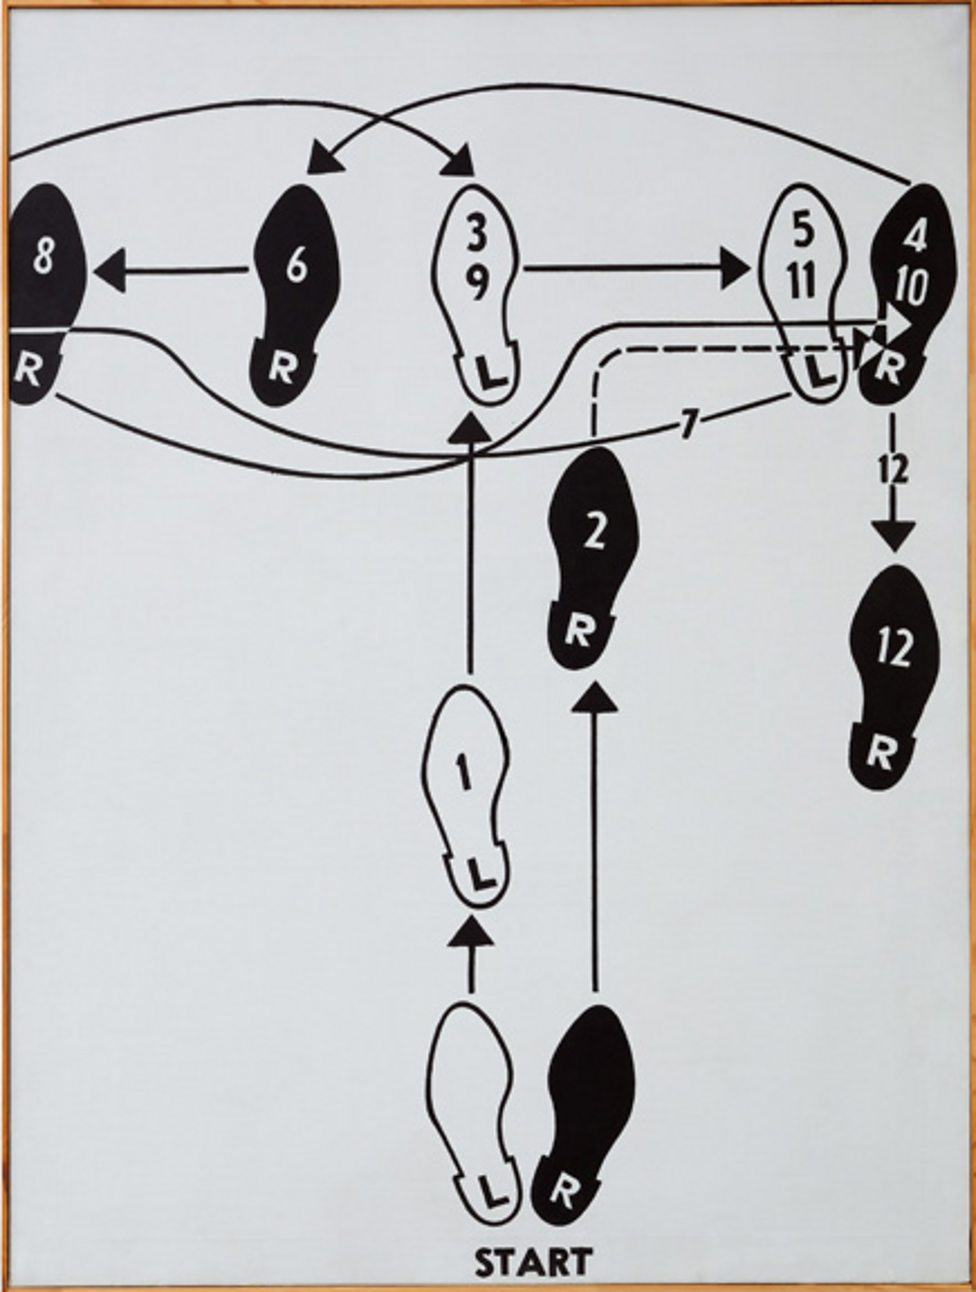 hight resolution of  transmitting andy warhol leviathan birds in literature transmitting andy warhol andy warhol dance diagram 1 fox trot the double twinkle man